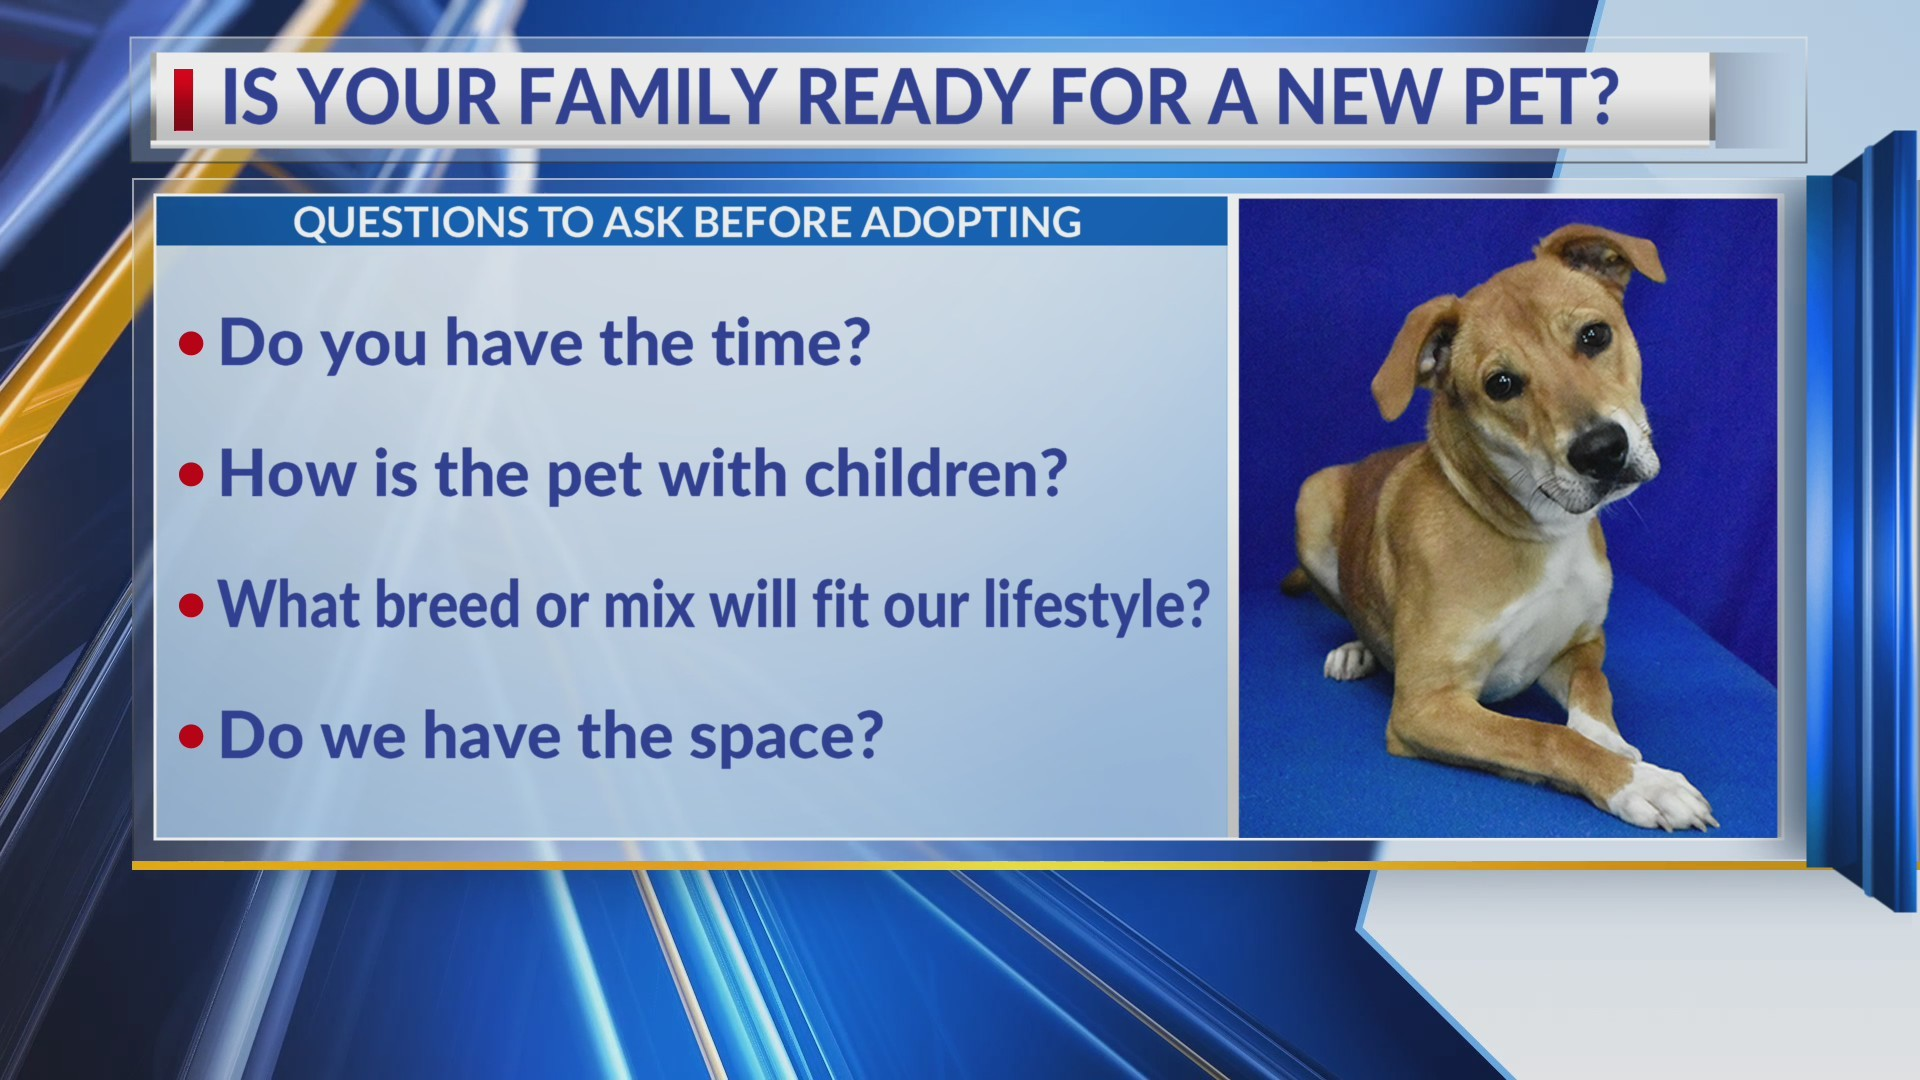 Pet Health: Is your family ready for a new pet?